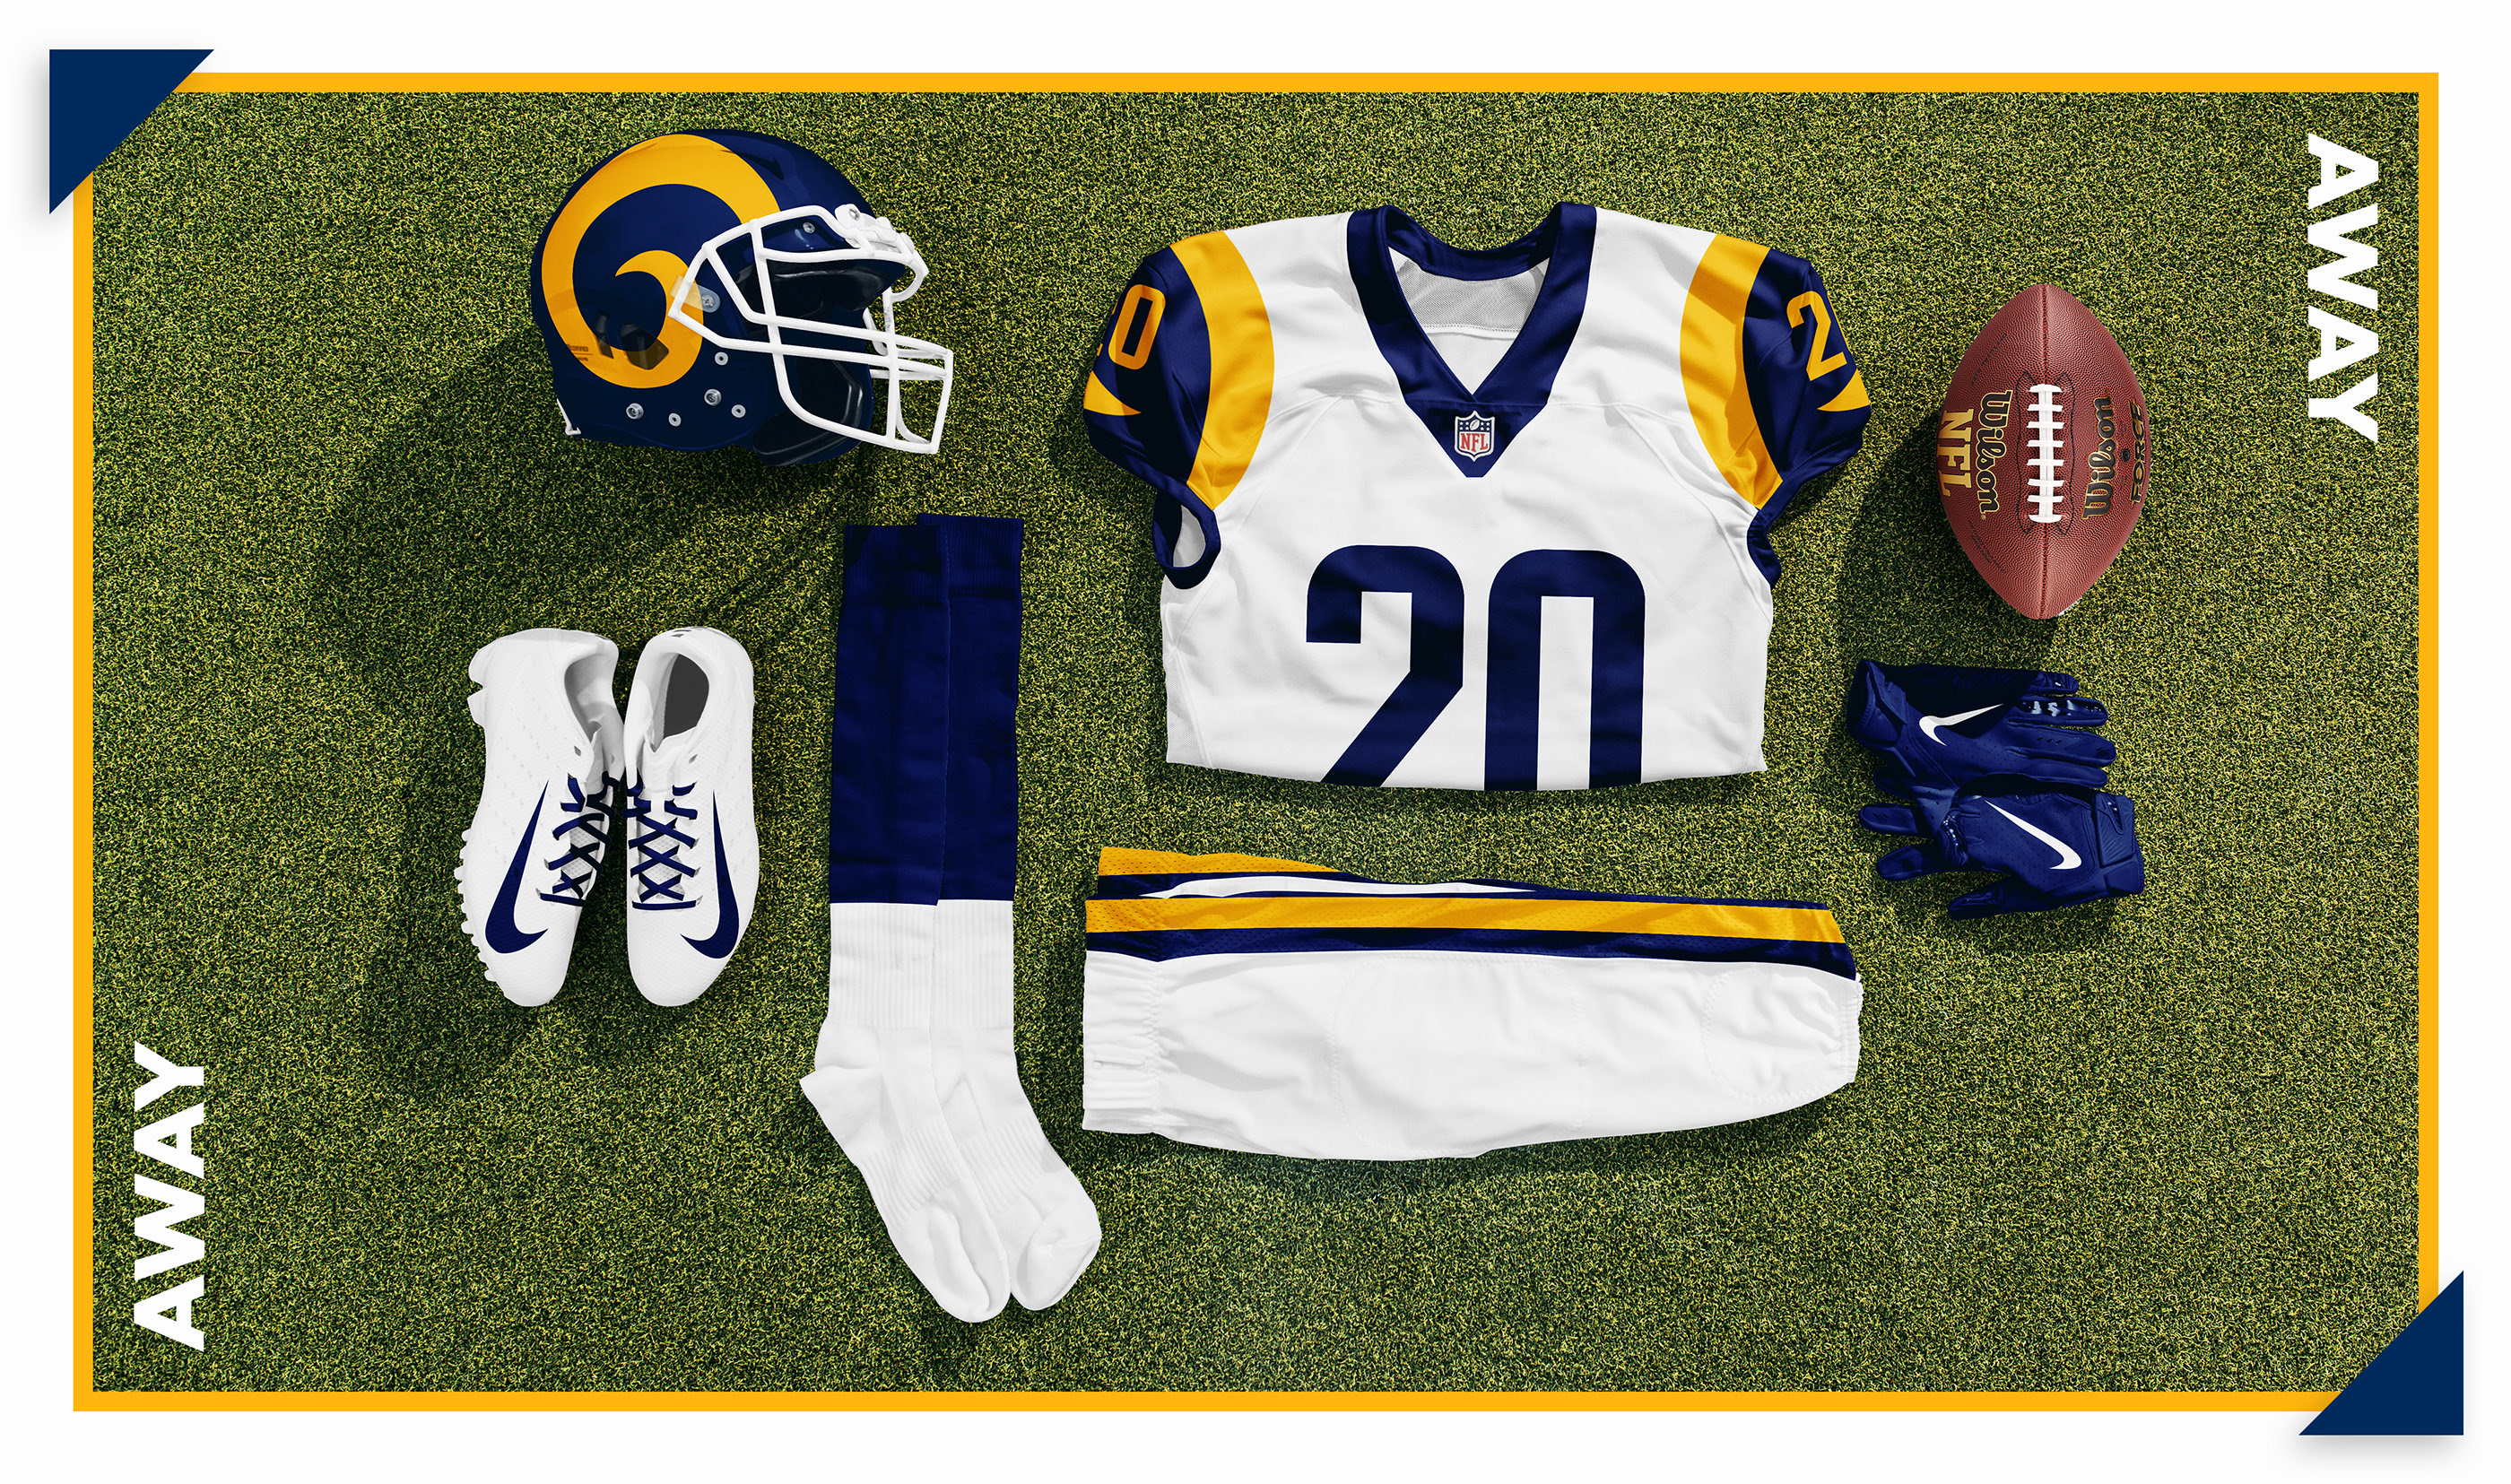 Rams Uniforms This Is The Best Concept Redesign Yet